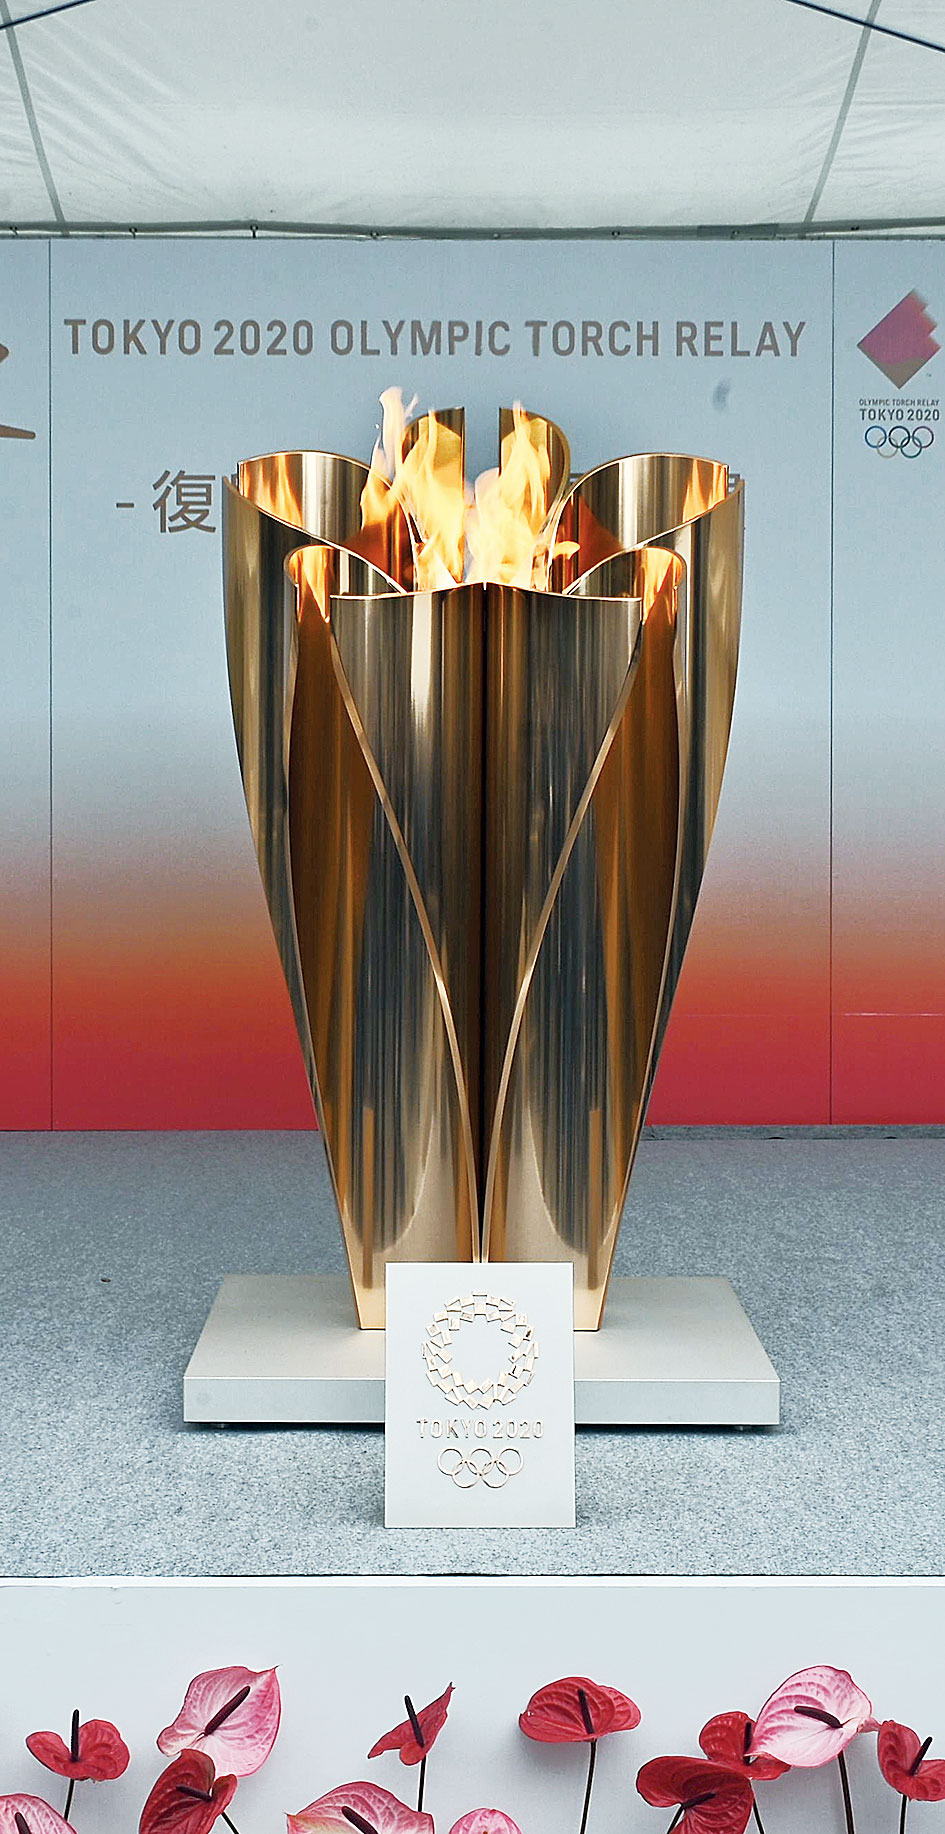 The Tokyo 2020 Olympic flame outside the Fukushima railway station